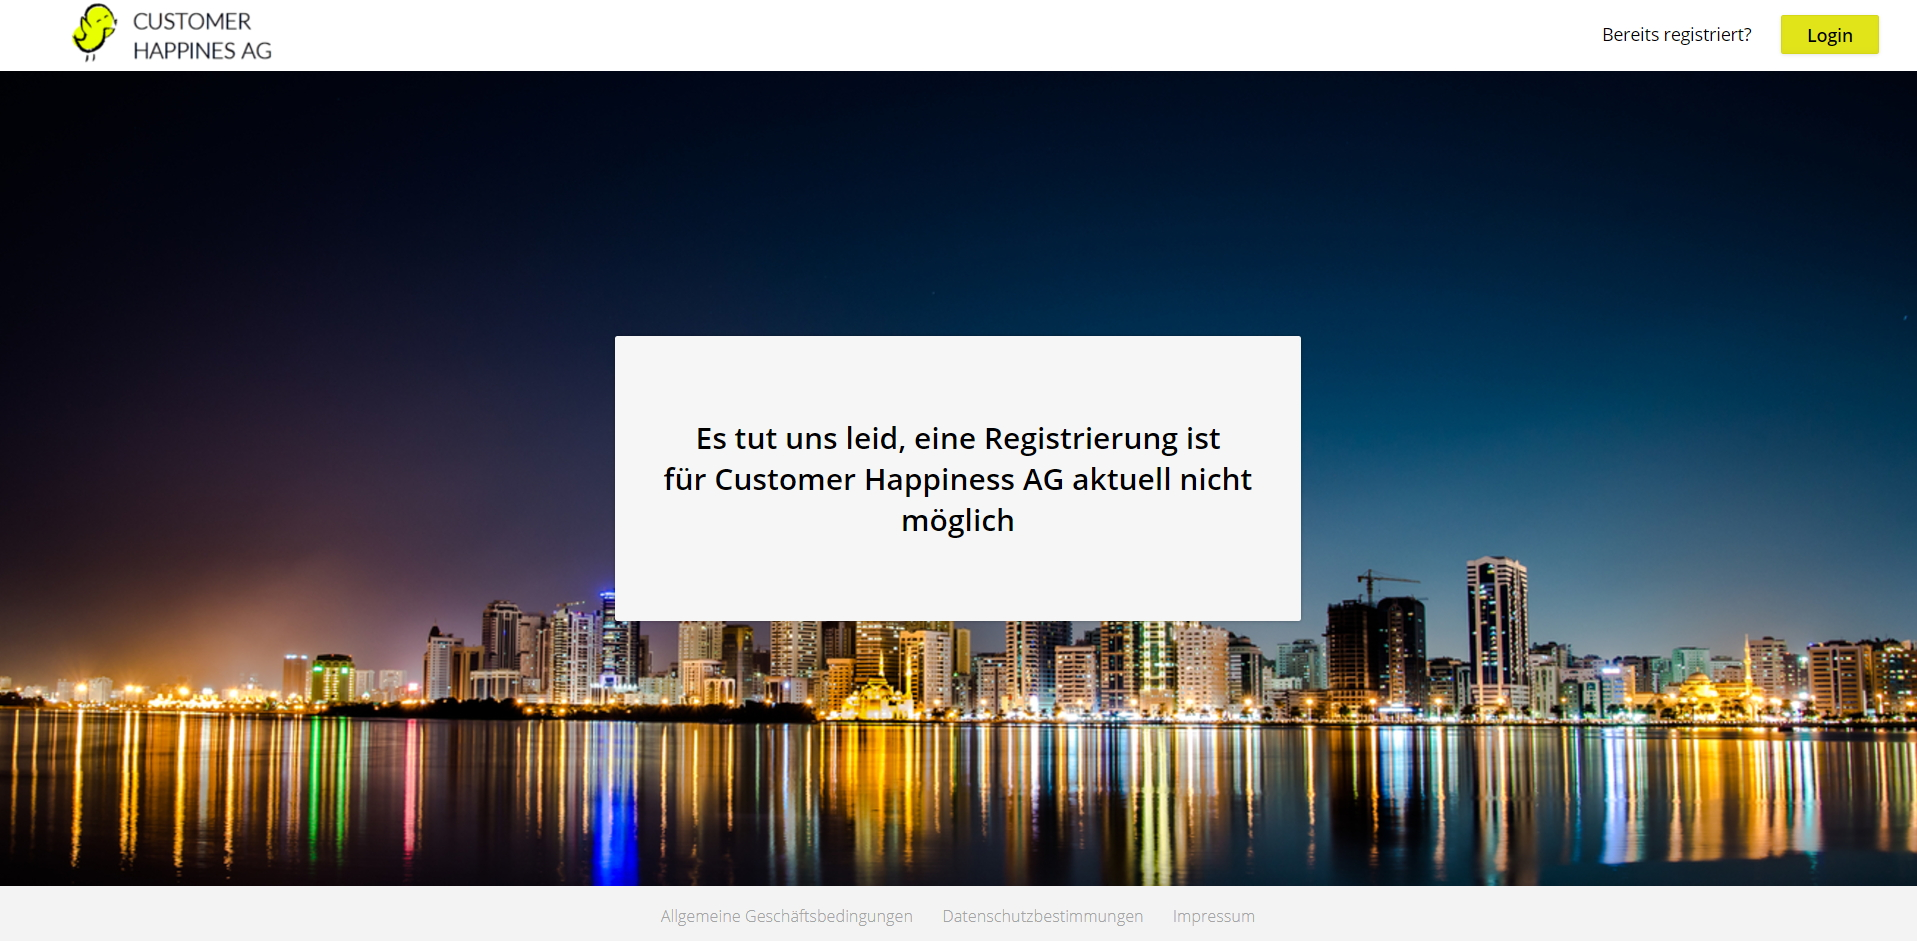 201708_Registration_Page_CA_3__DE_.jpg